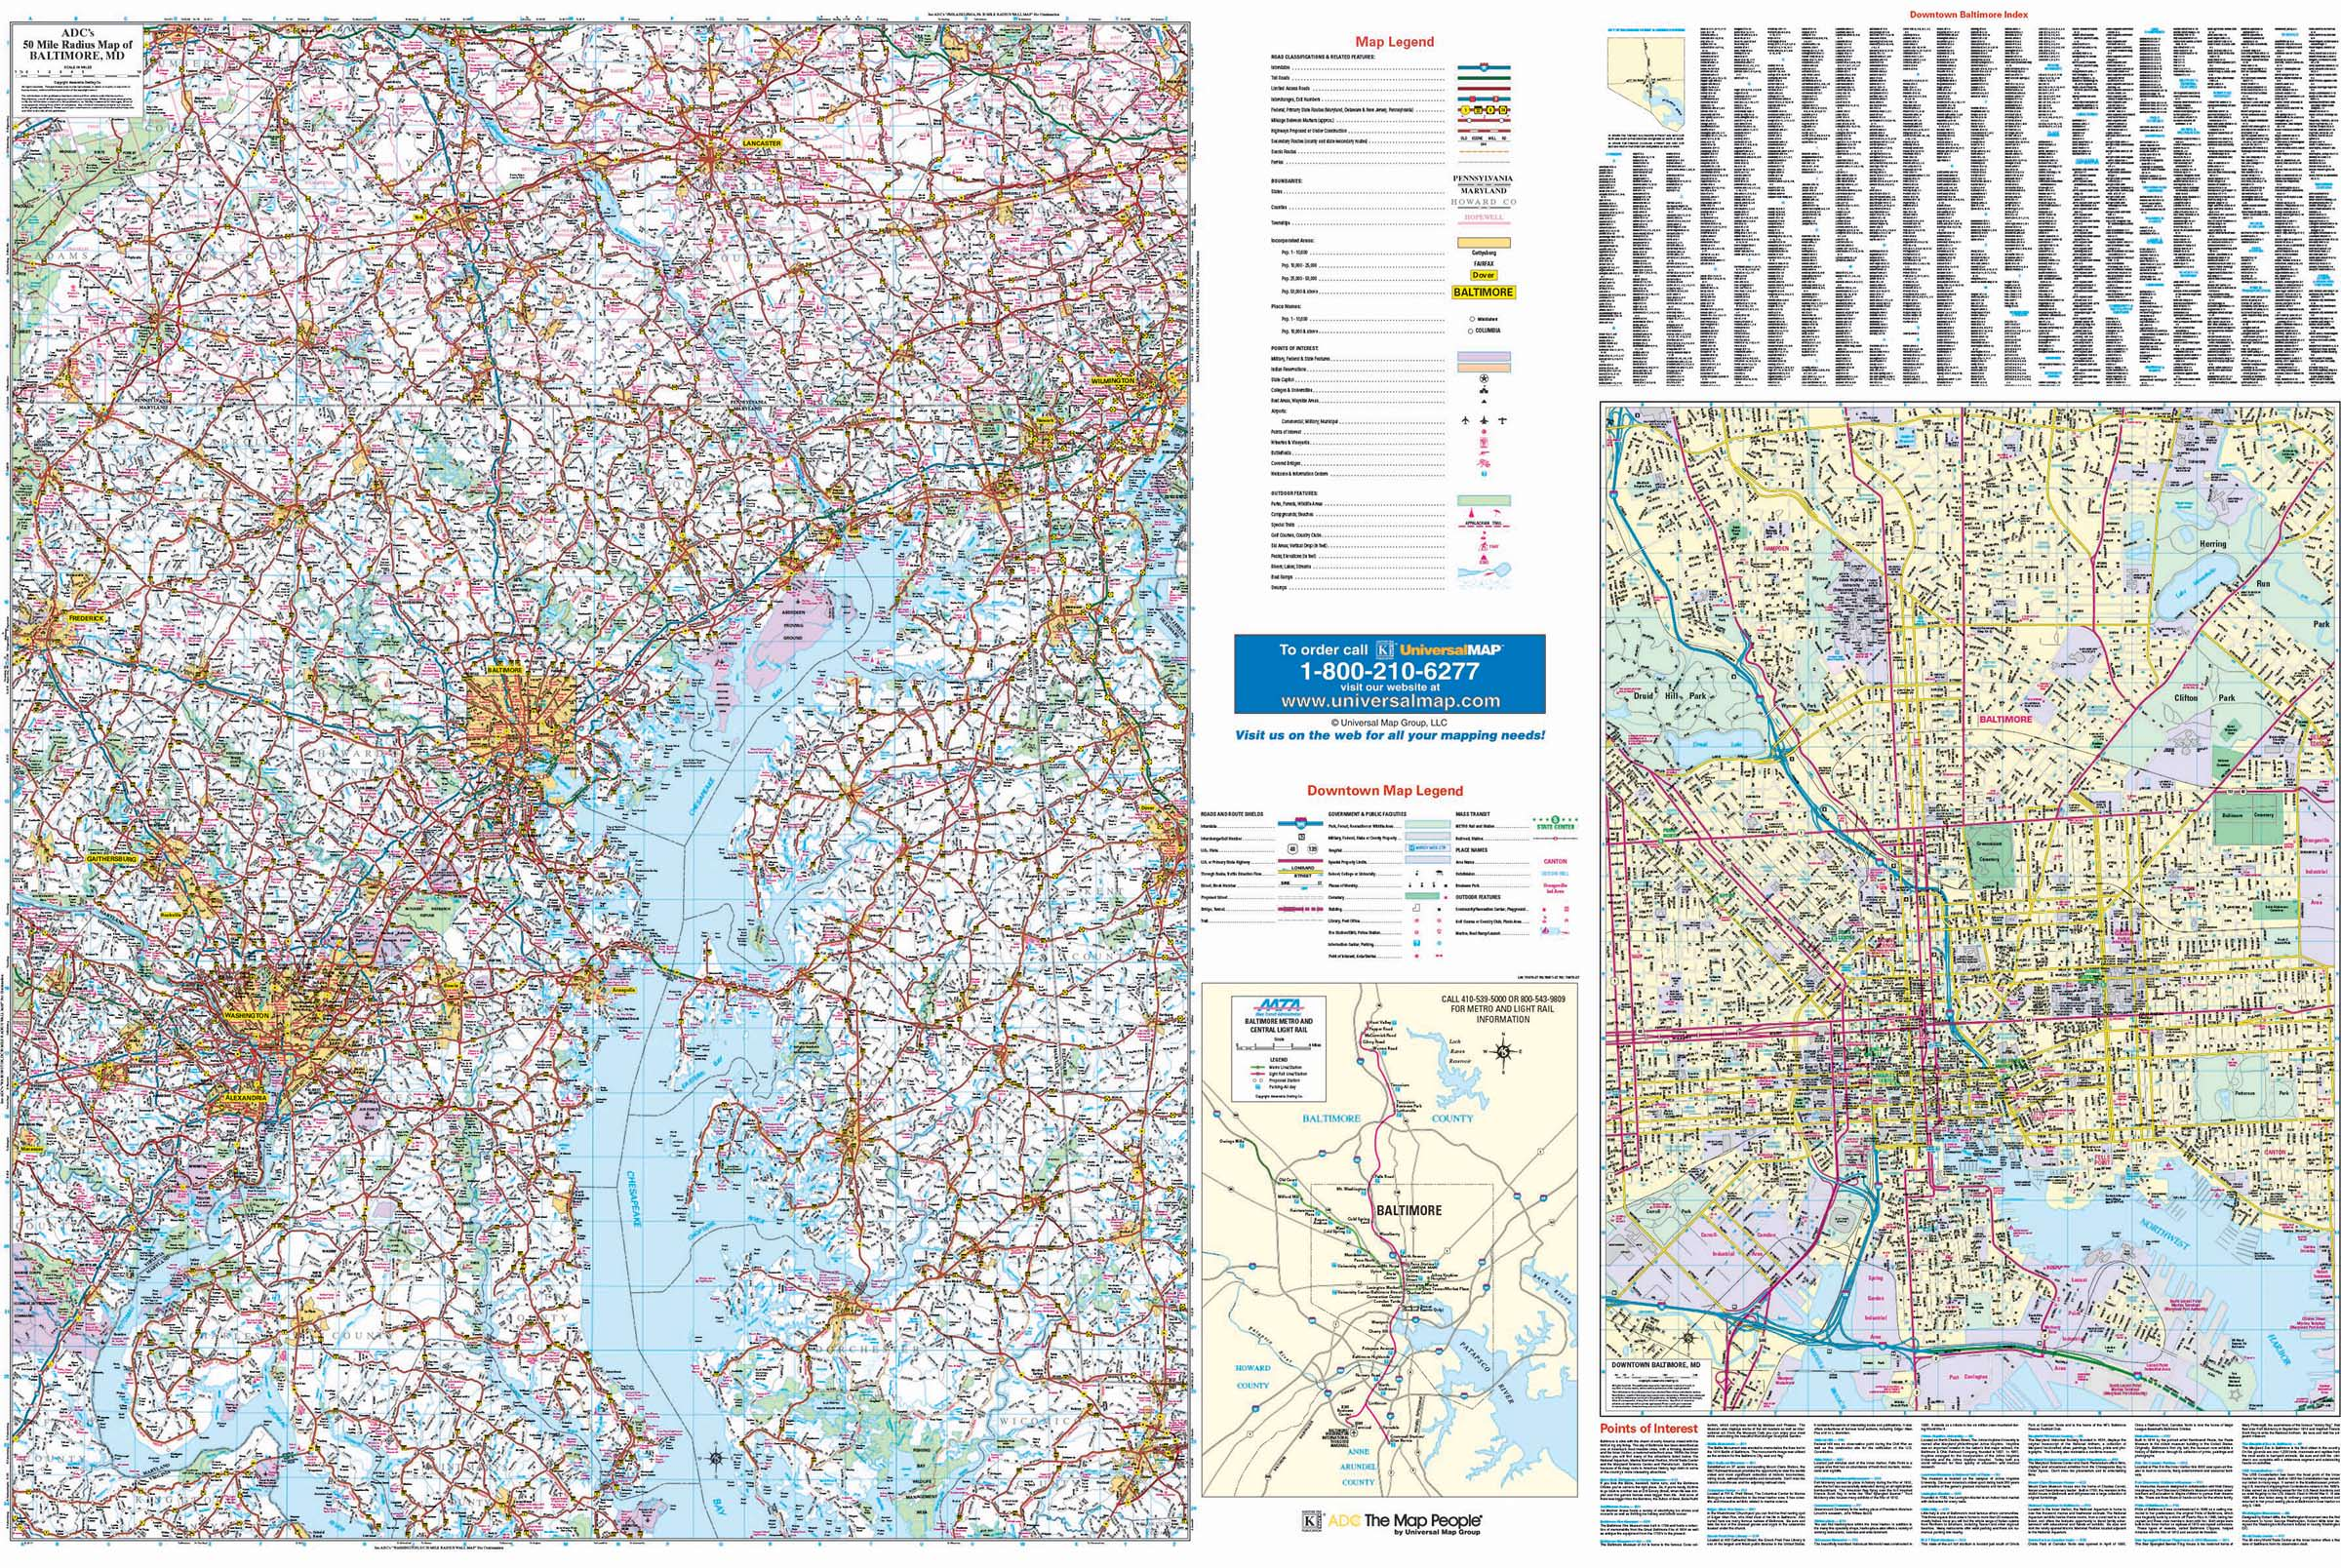 Baltimore, Maryland 50-mile Radius Vicinity Wall Map – KAPPA MAP GROUP